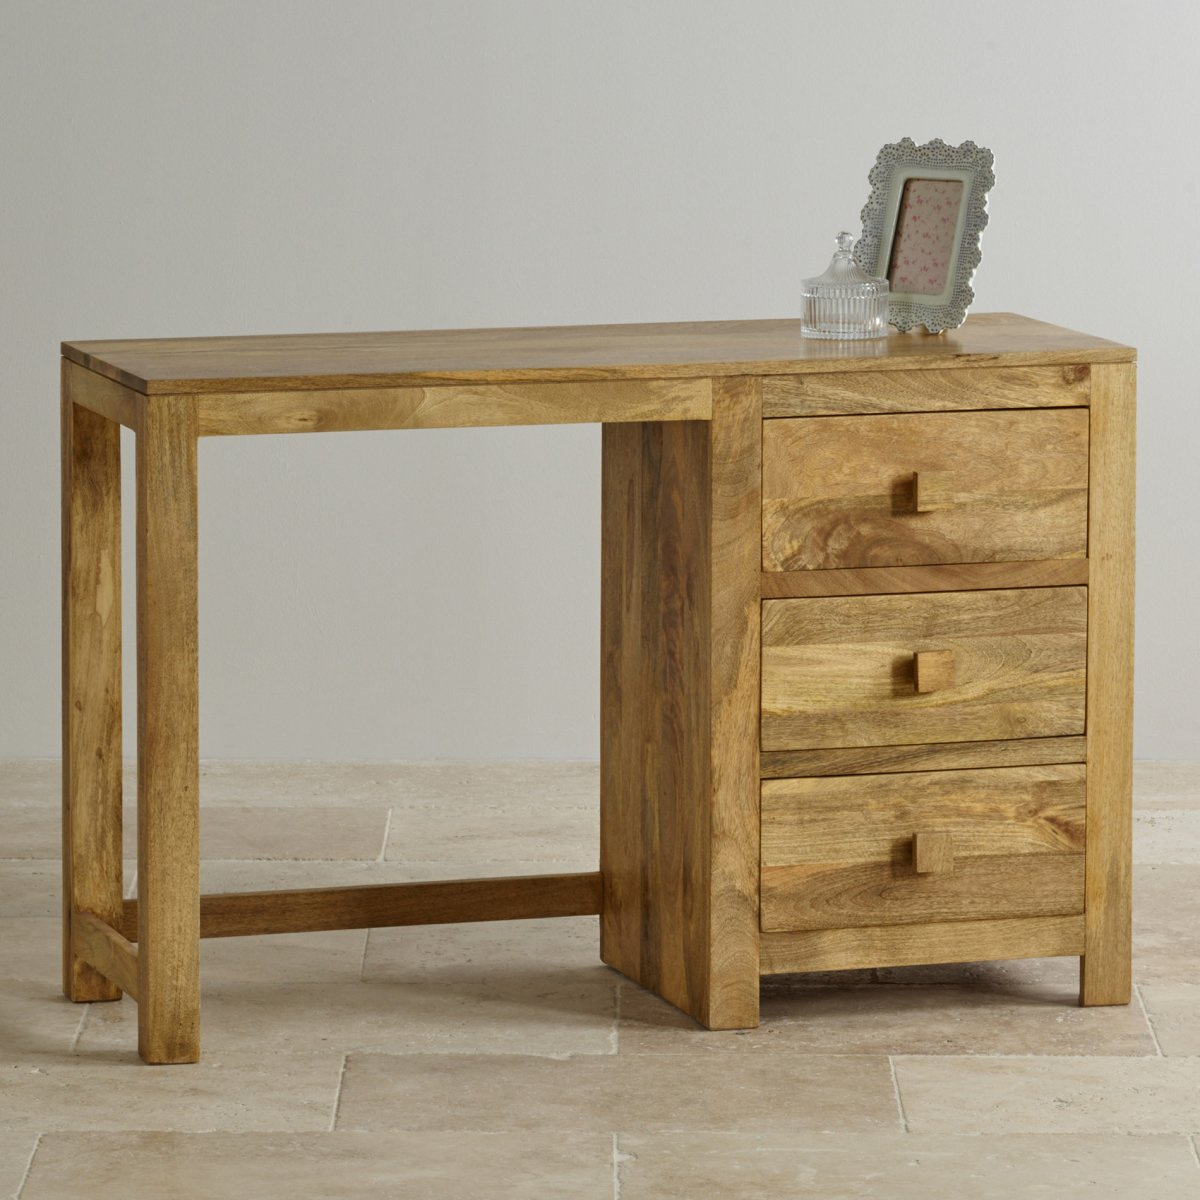 Bedroom Furniture For Sale Galway